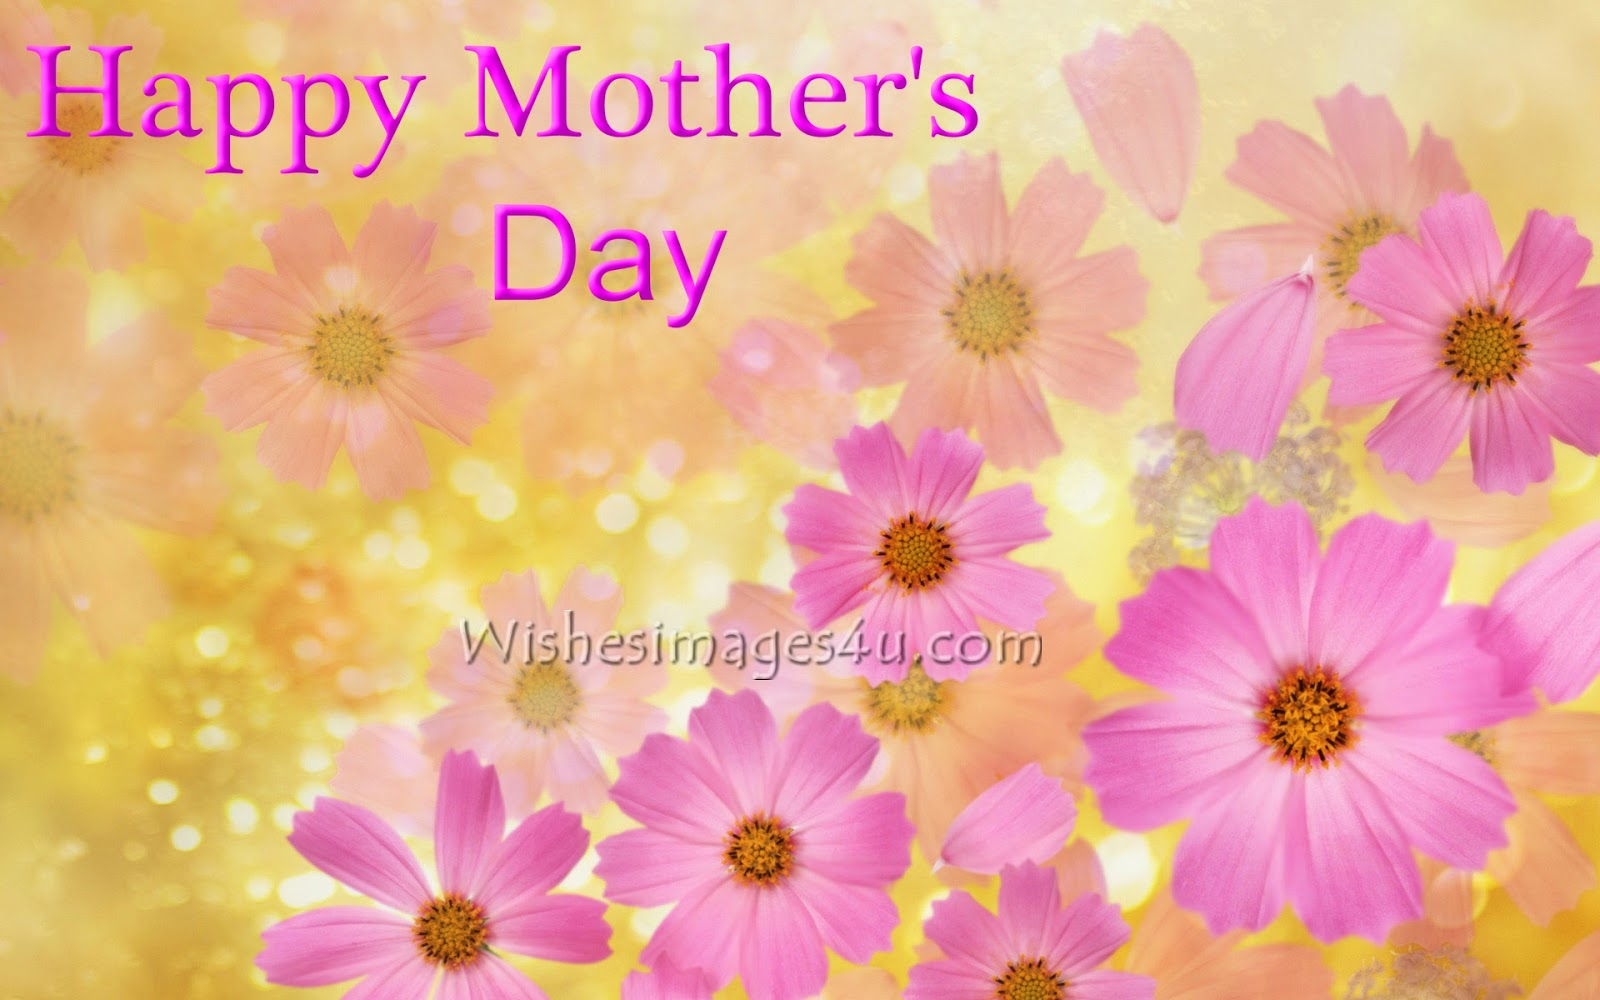 Happy Mothers Day 2017 Flowers Images Mothers Day 2017